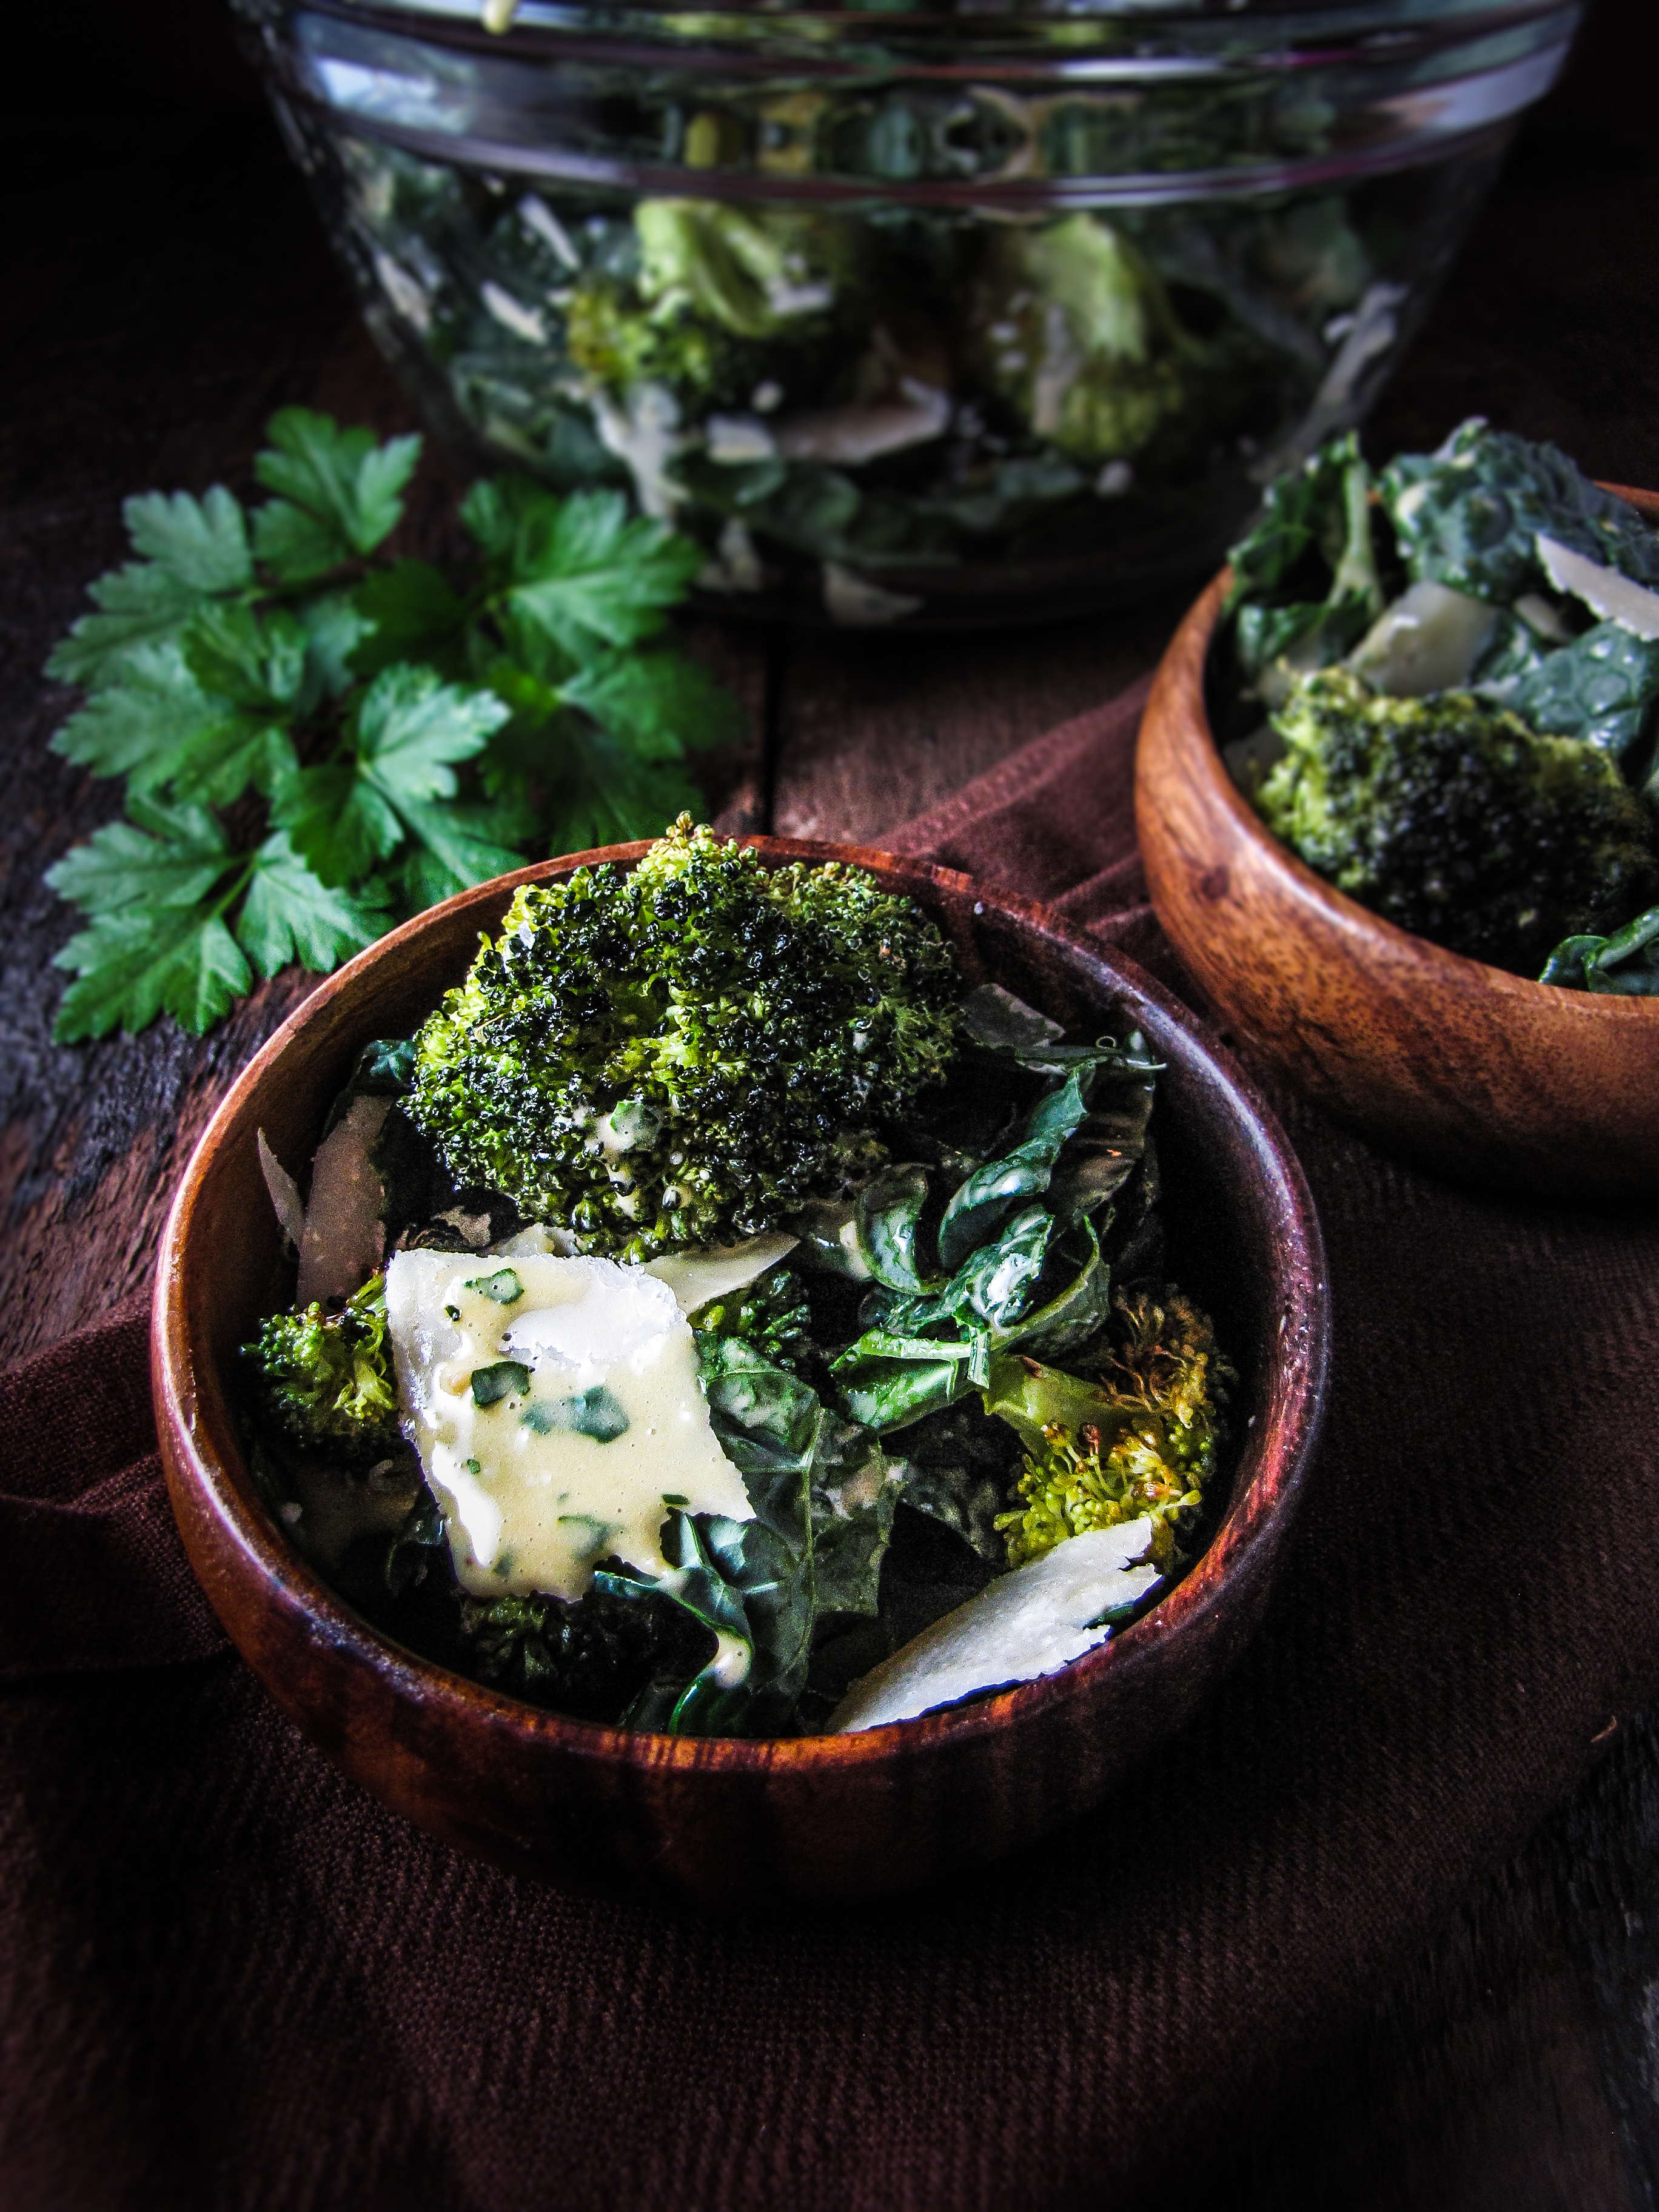 Healthy Winter Recipes - Roasted Kale and Broccoli Caesar